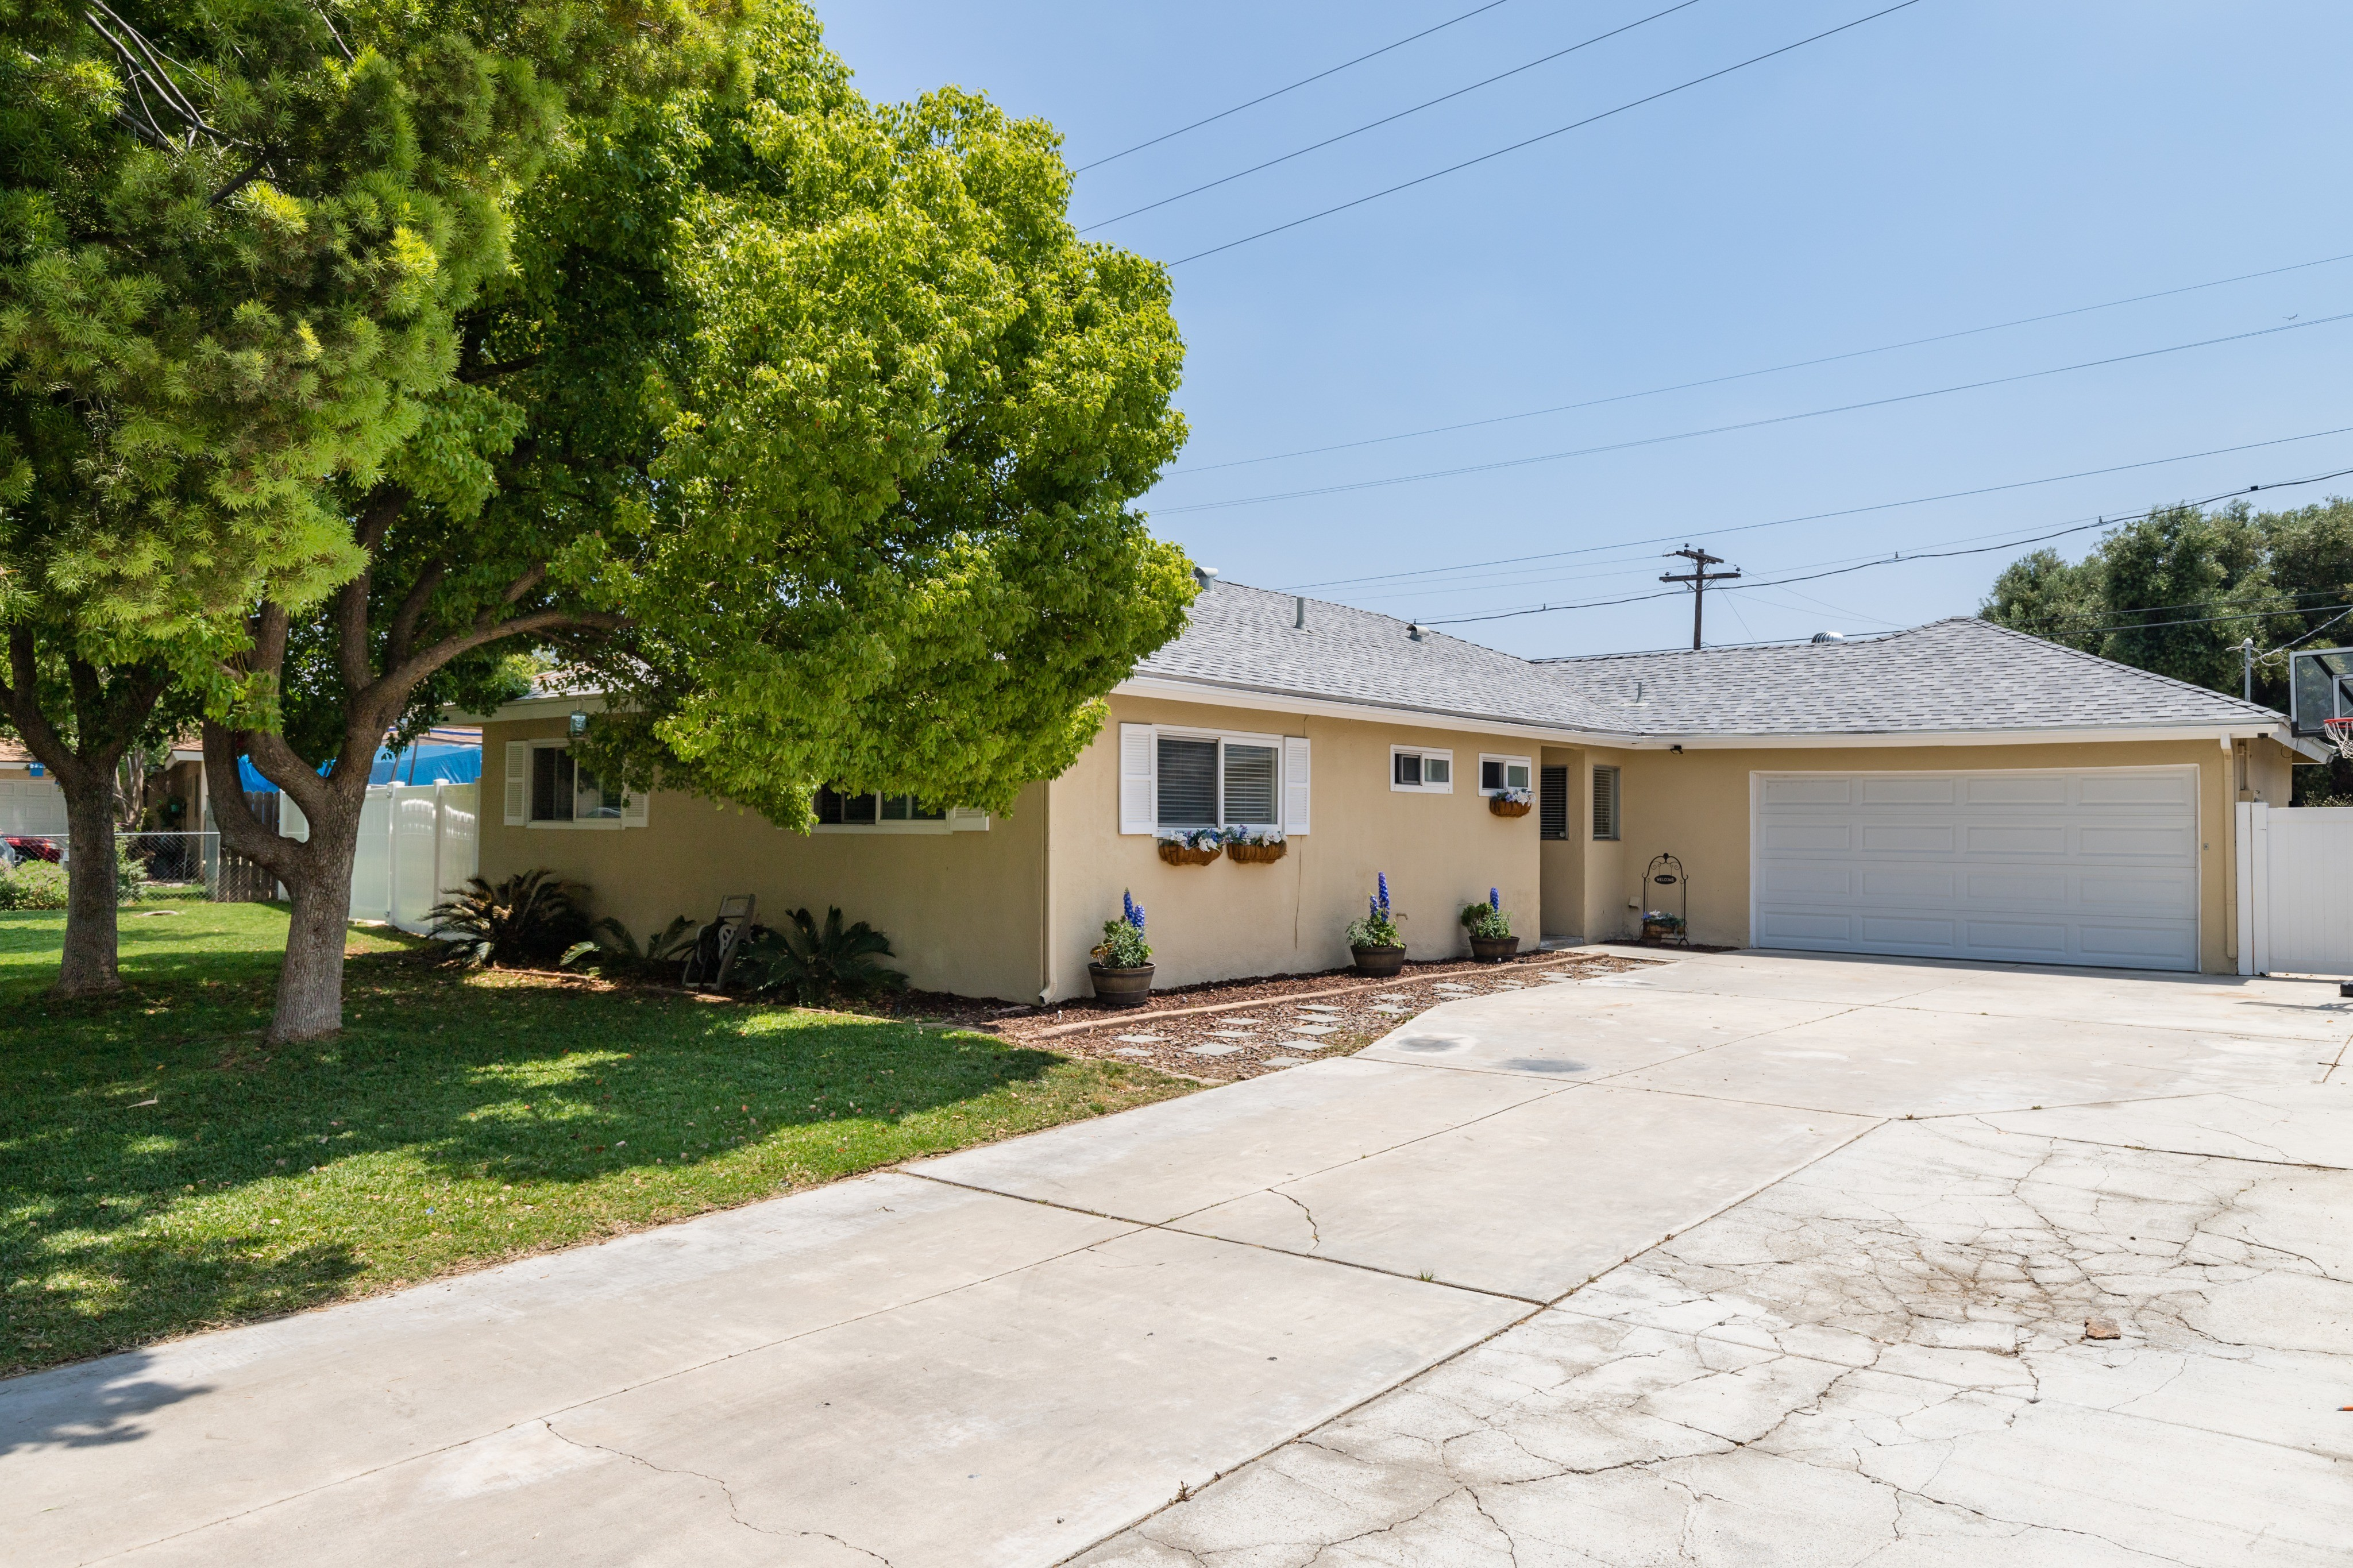 8512 Basswood Ave. Riverside, CA 92504